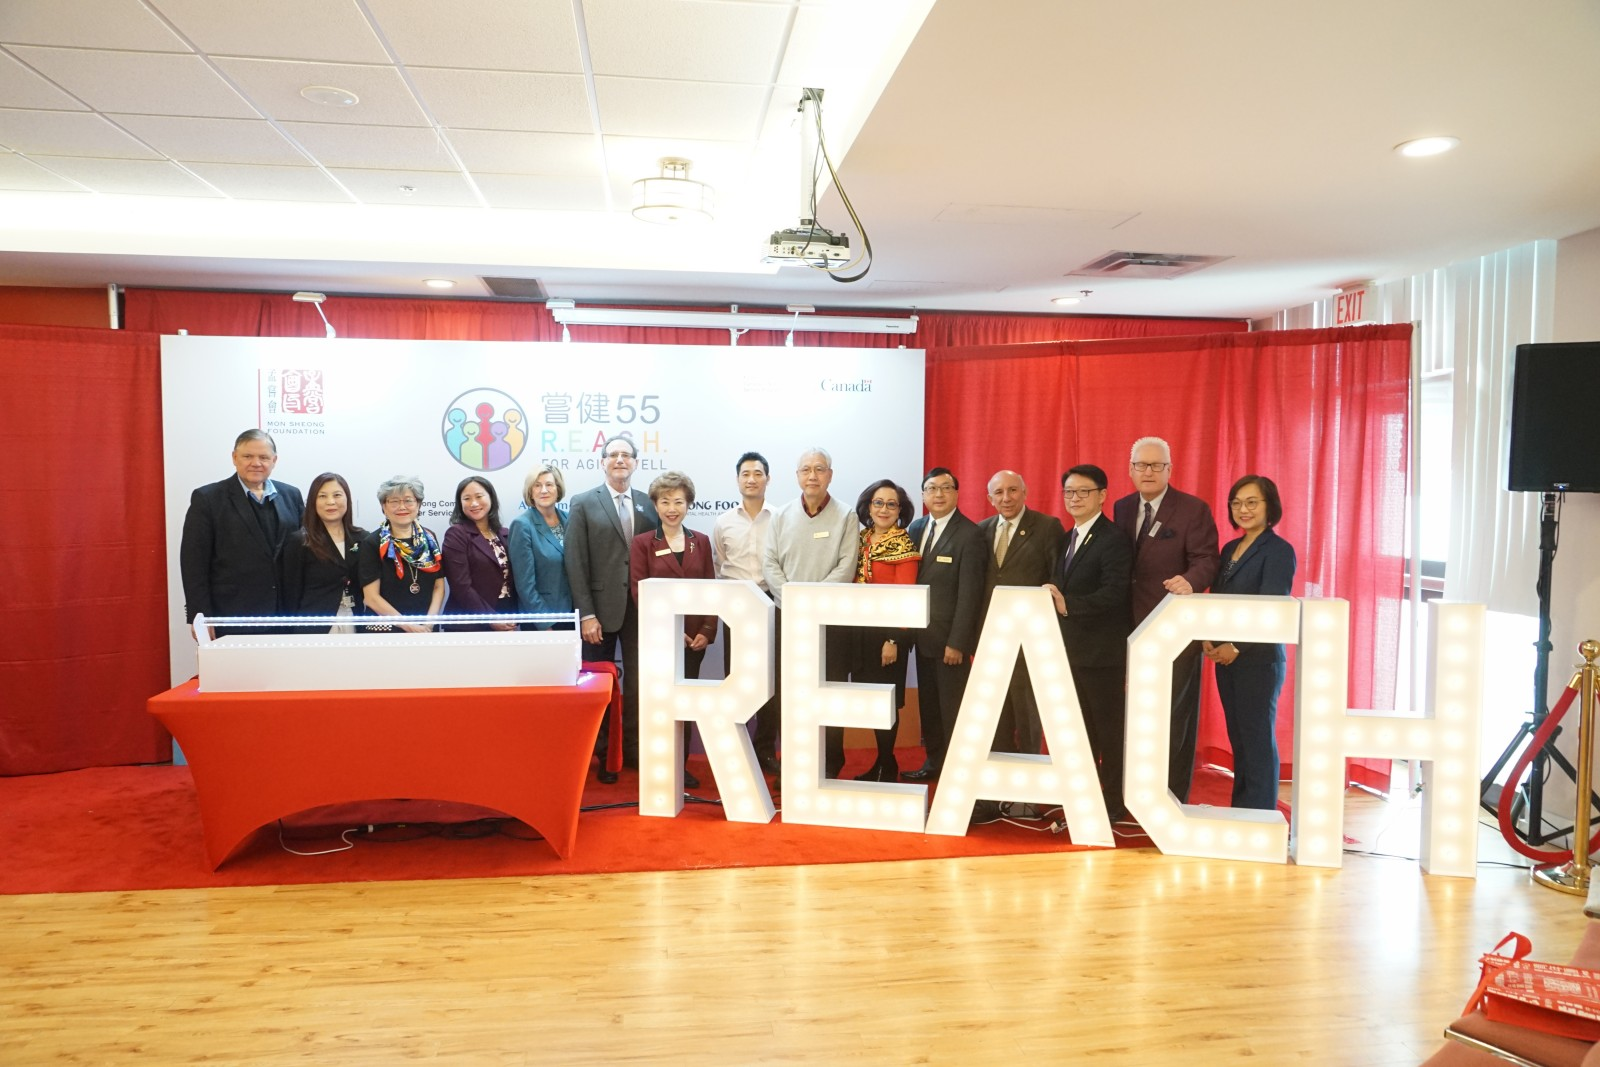 R.E.A.C.H. for Aging Well project launched officially